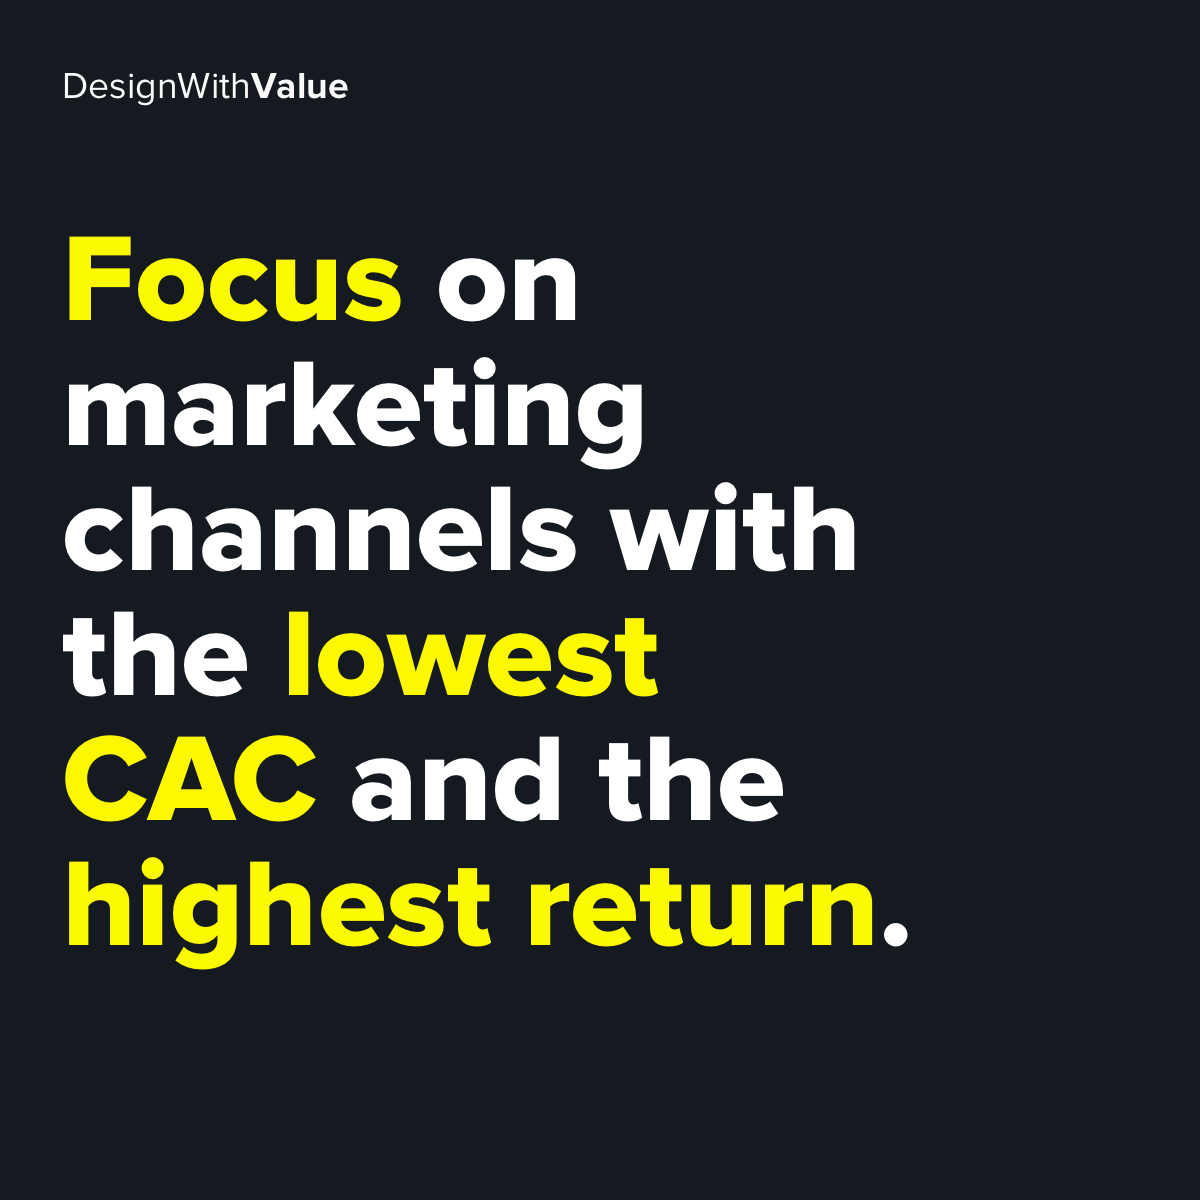 Focus on marketing channels with the lowest CAC and the highest return